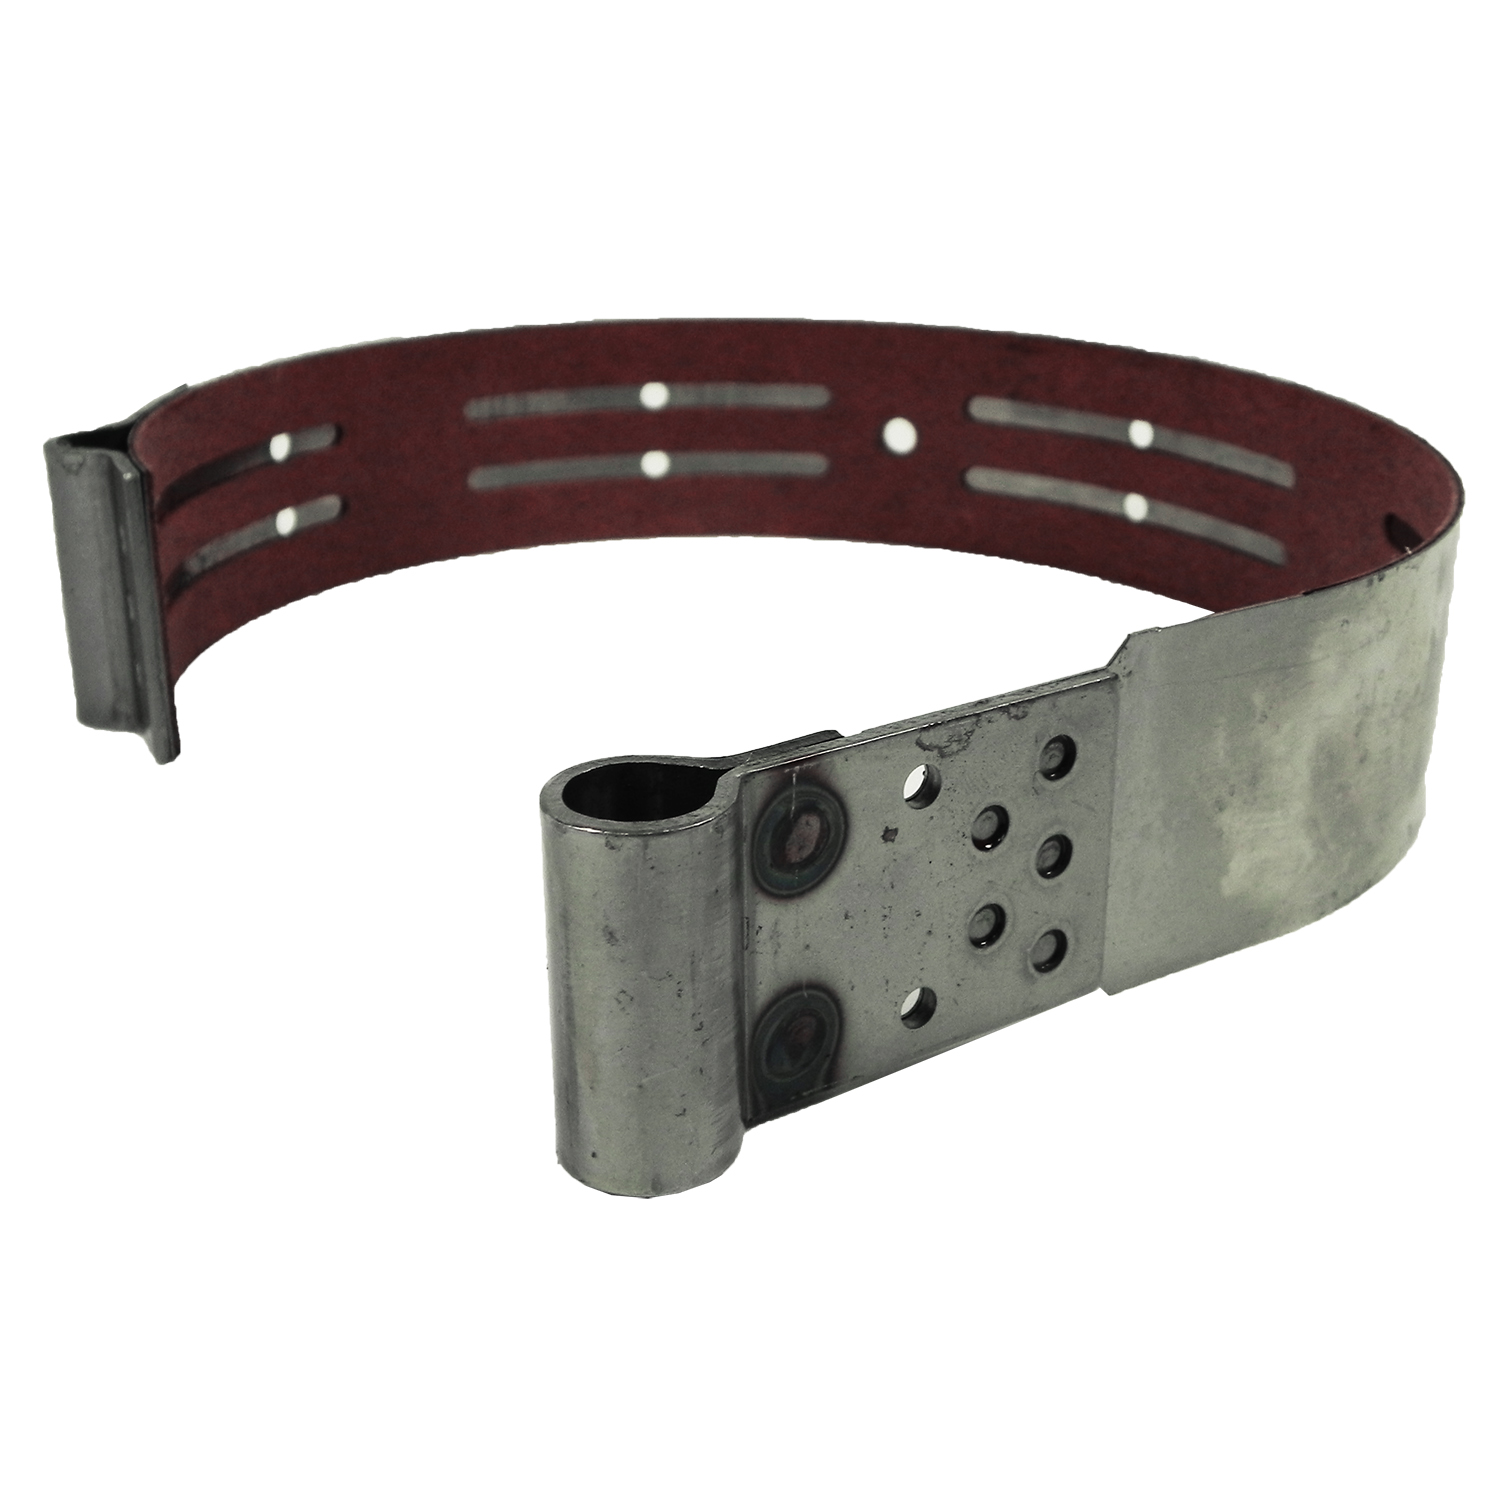 3T40, TH125, TH125C Intermediate Brake Transmission Band